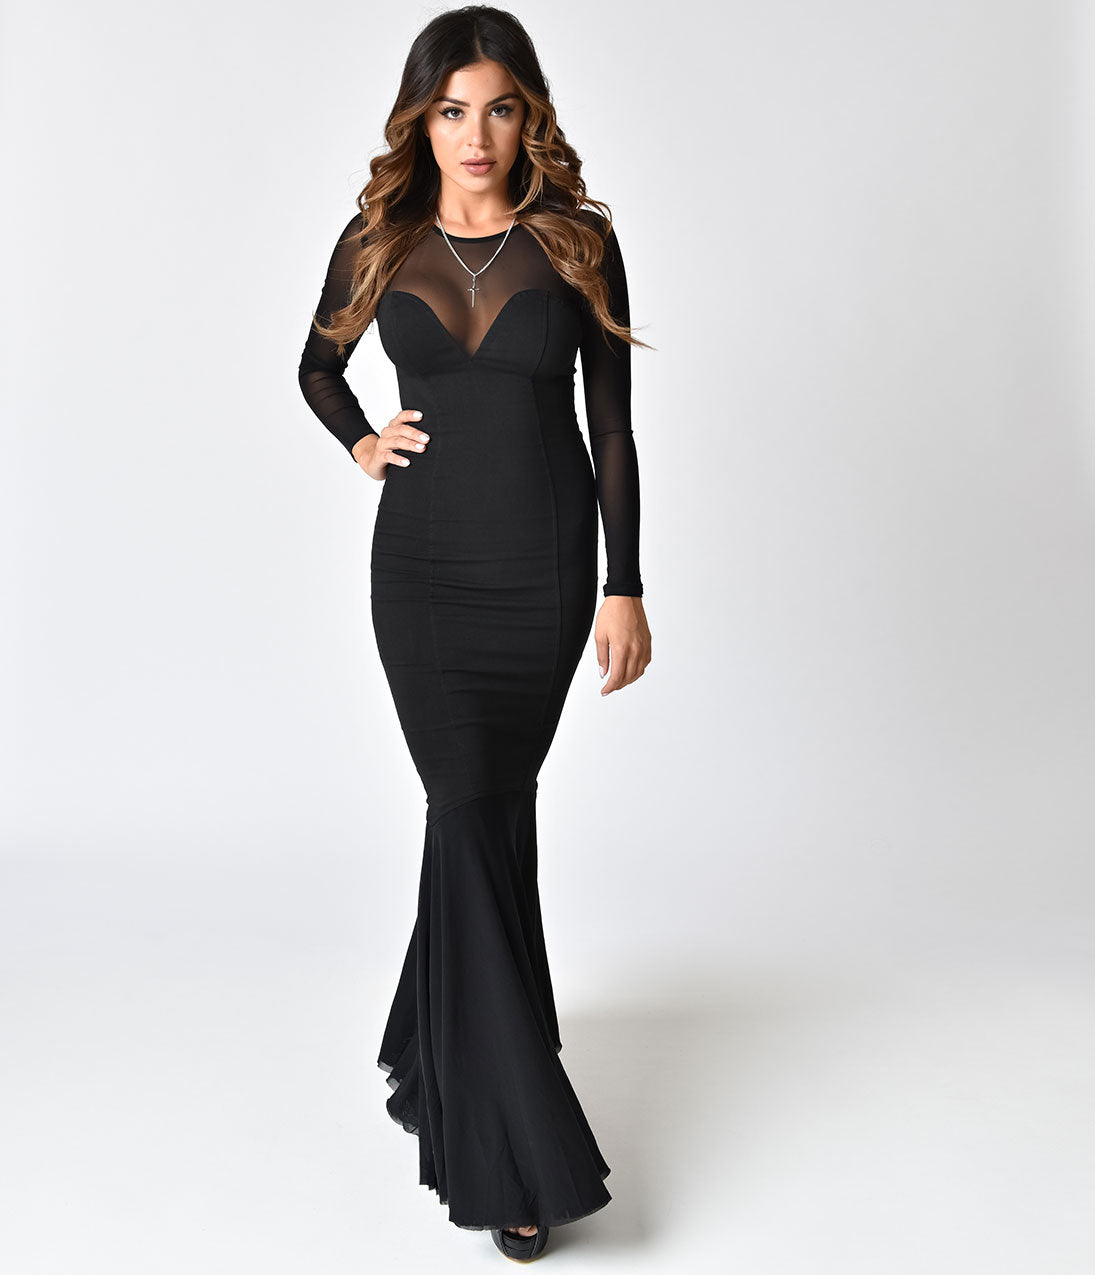 Vintage Evening Dresses Collectif Black Fishtail Morticia Wiggle Gown $88.00 AT vintagedancer.com